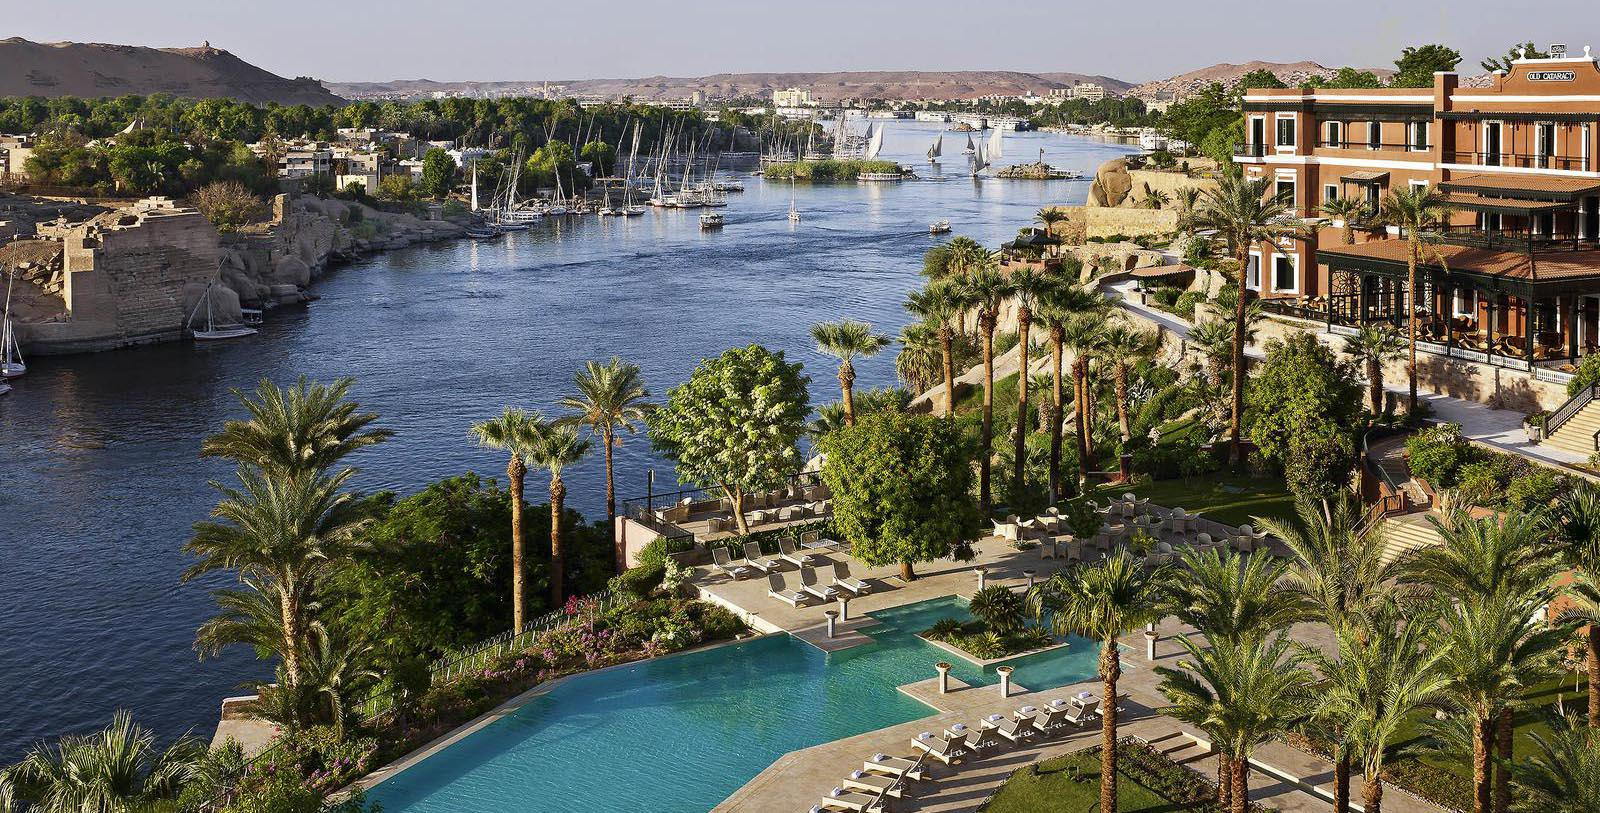 Image of Hotel Exterior Sofitel Legend Old Cataract Aswan, 1899, Member of Historic Hotels Worldwide, in Aswan, Egypt, Overview